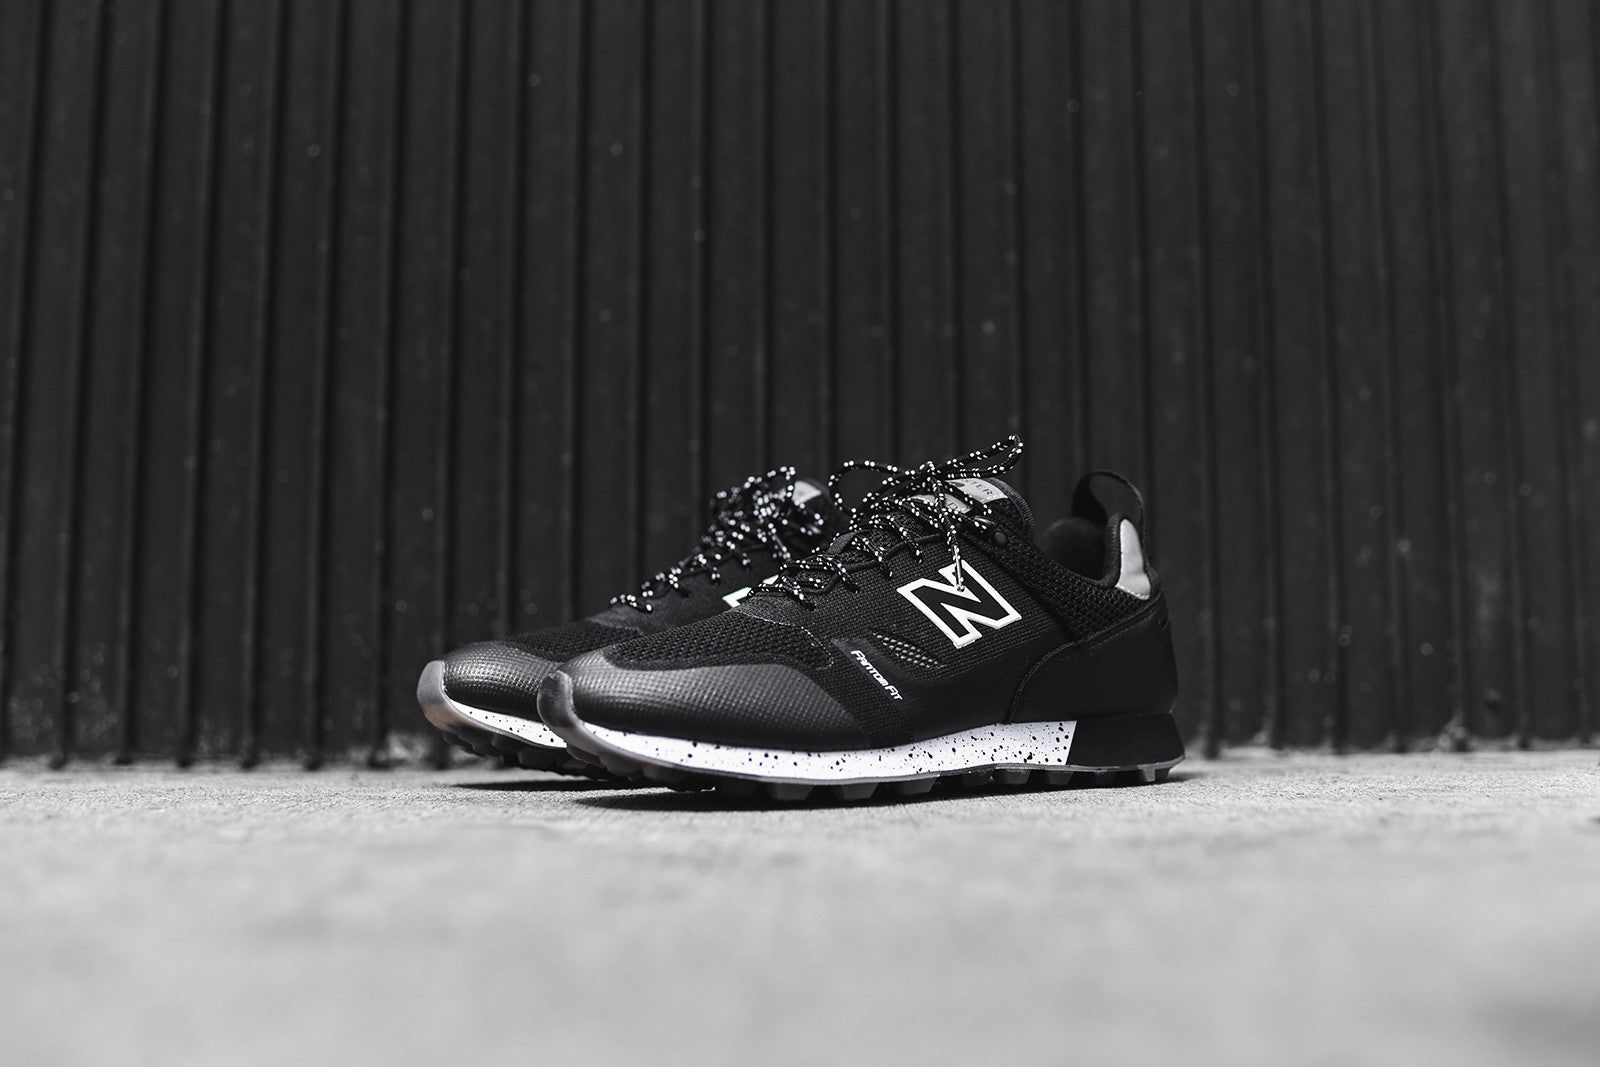 100% authentic d50bc aa6e9 New Balance Trailbuster Re-Engineered - Black   Steel. June 20, 2017. -3.  -1. -2